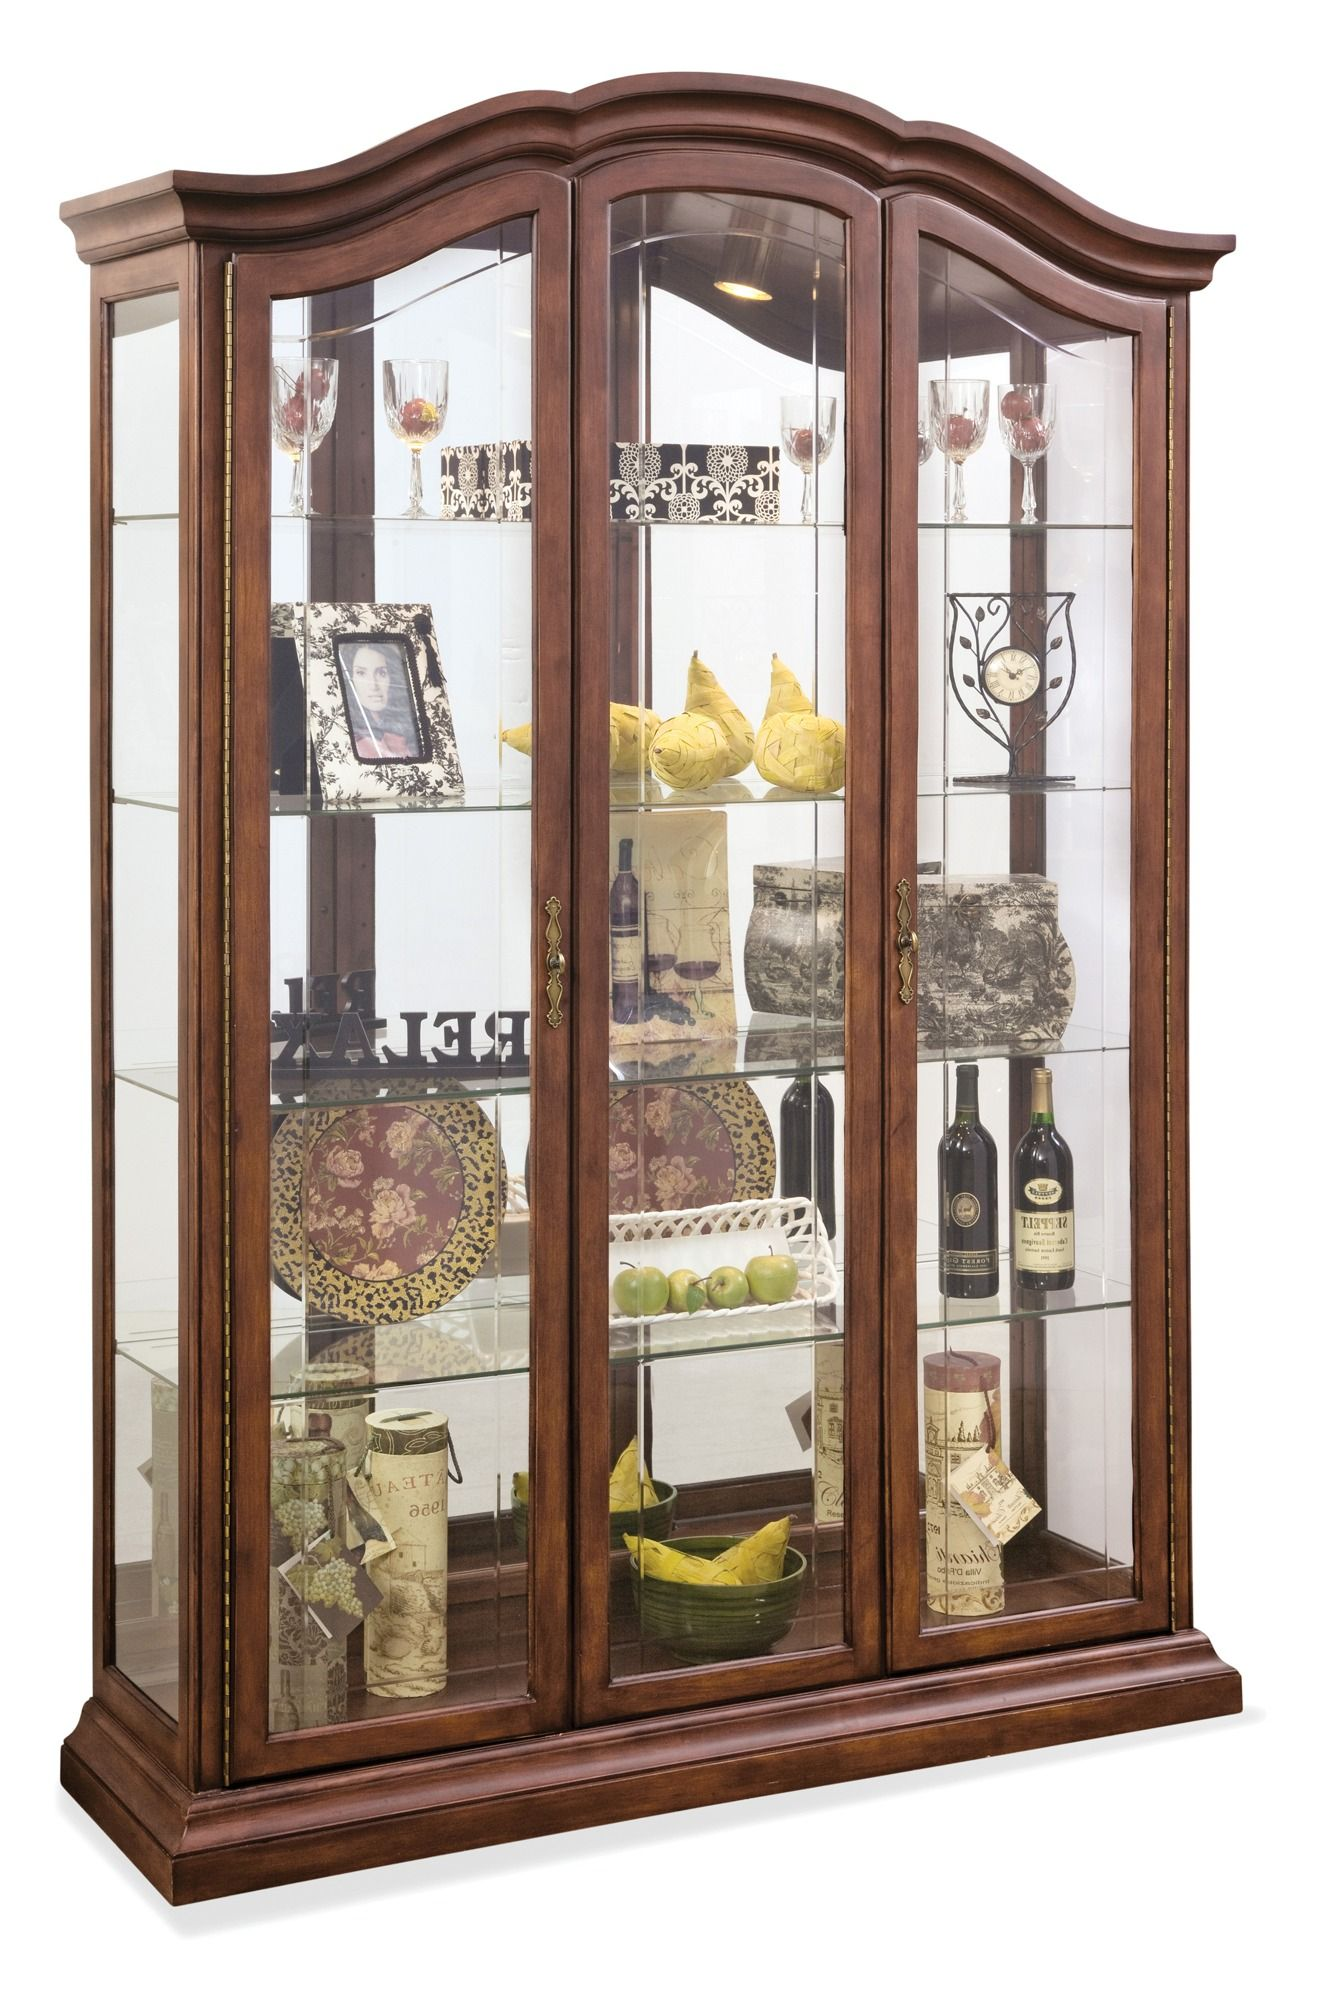 Oxford Large Curio Cabinet In Cherry Philip Reinisch Home Gallery Stores Glass Cabinet Doors Curio Cabinet China Cabinet